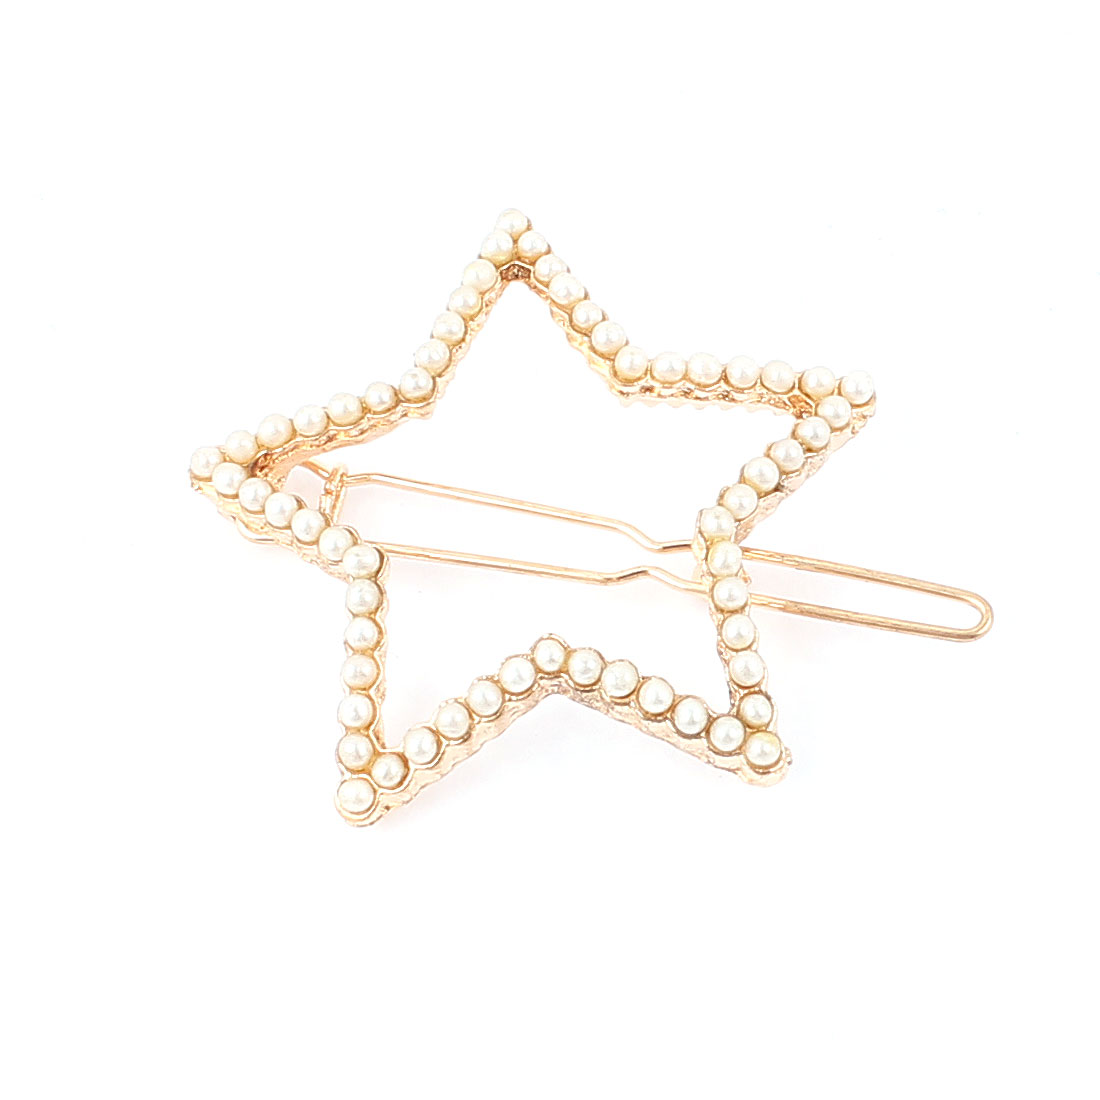 Lady Metal Five-pointed Star Shape Faux Imitation Pearl Inlaid Hair Clip Barrette Gold Tone